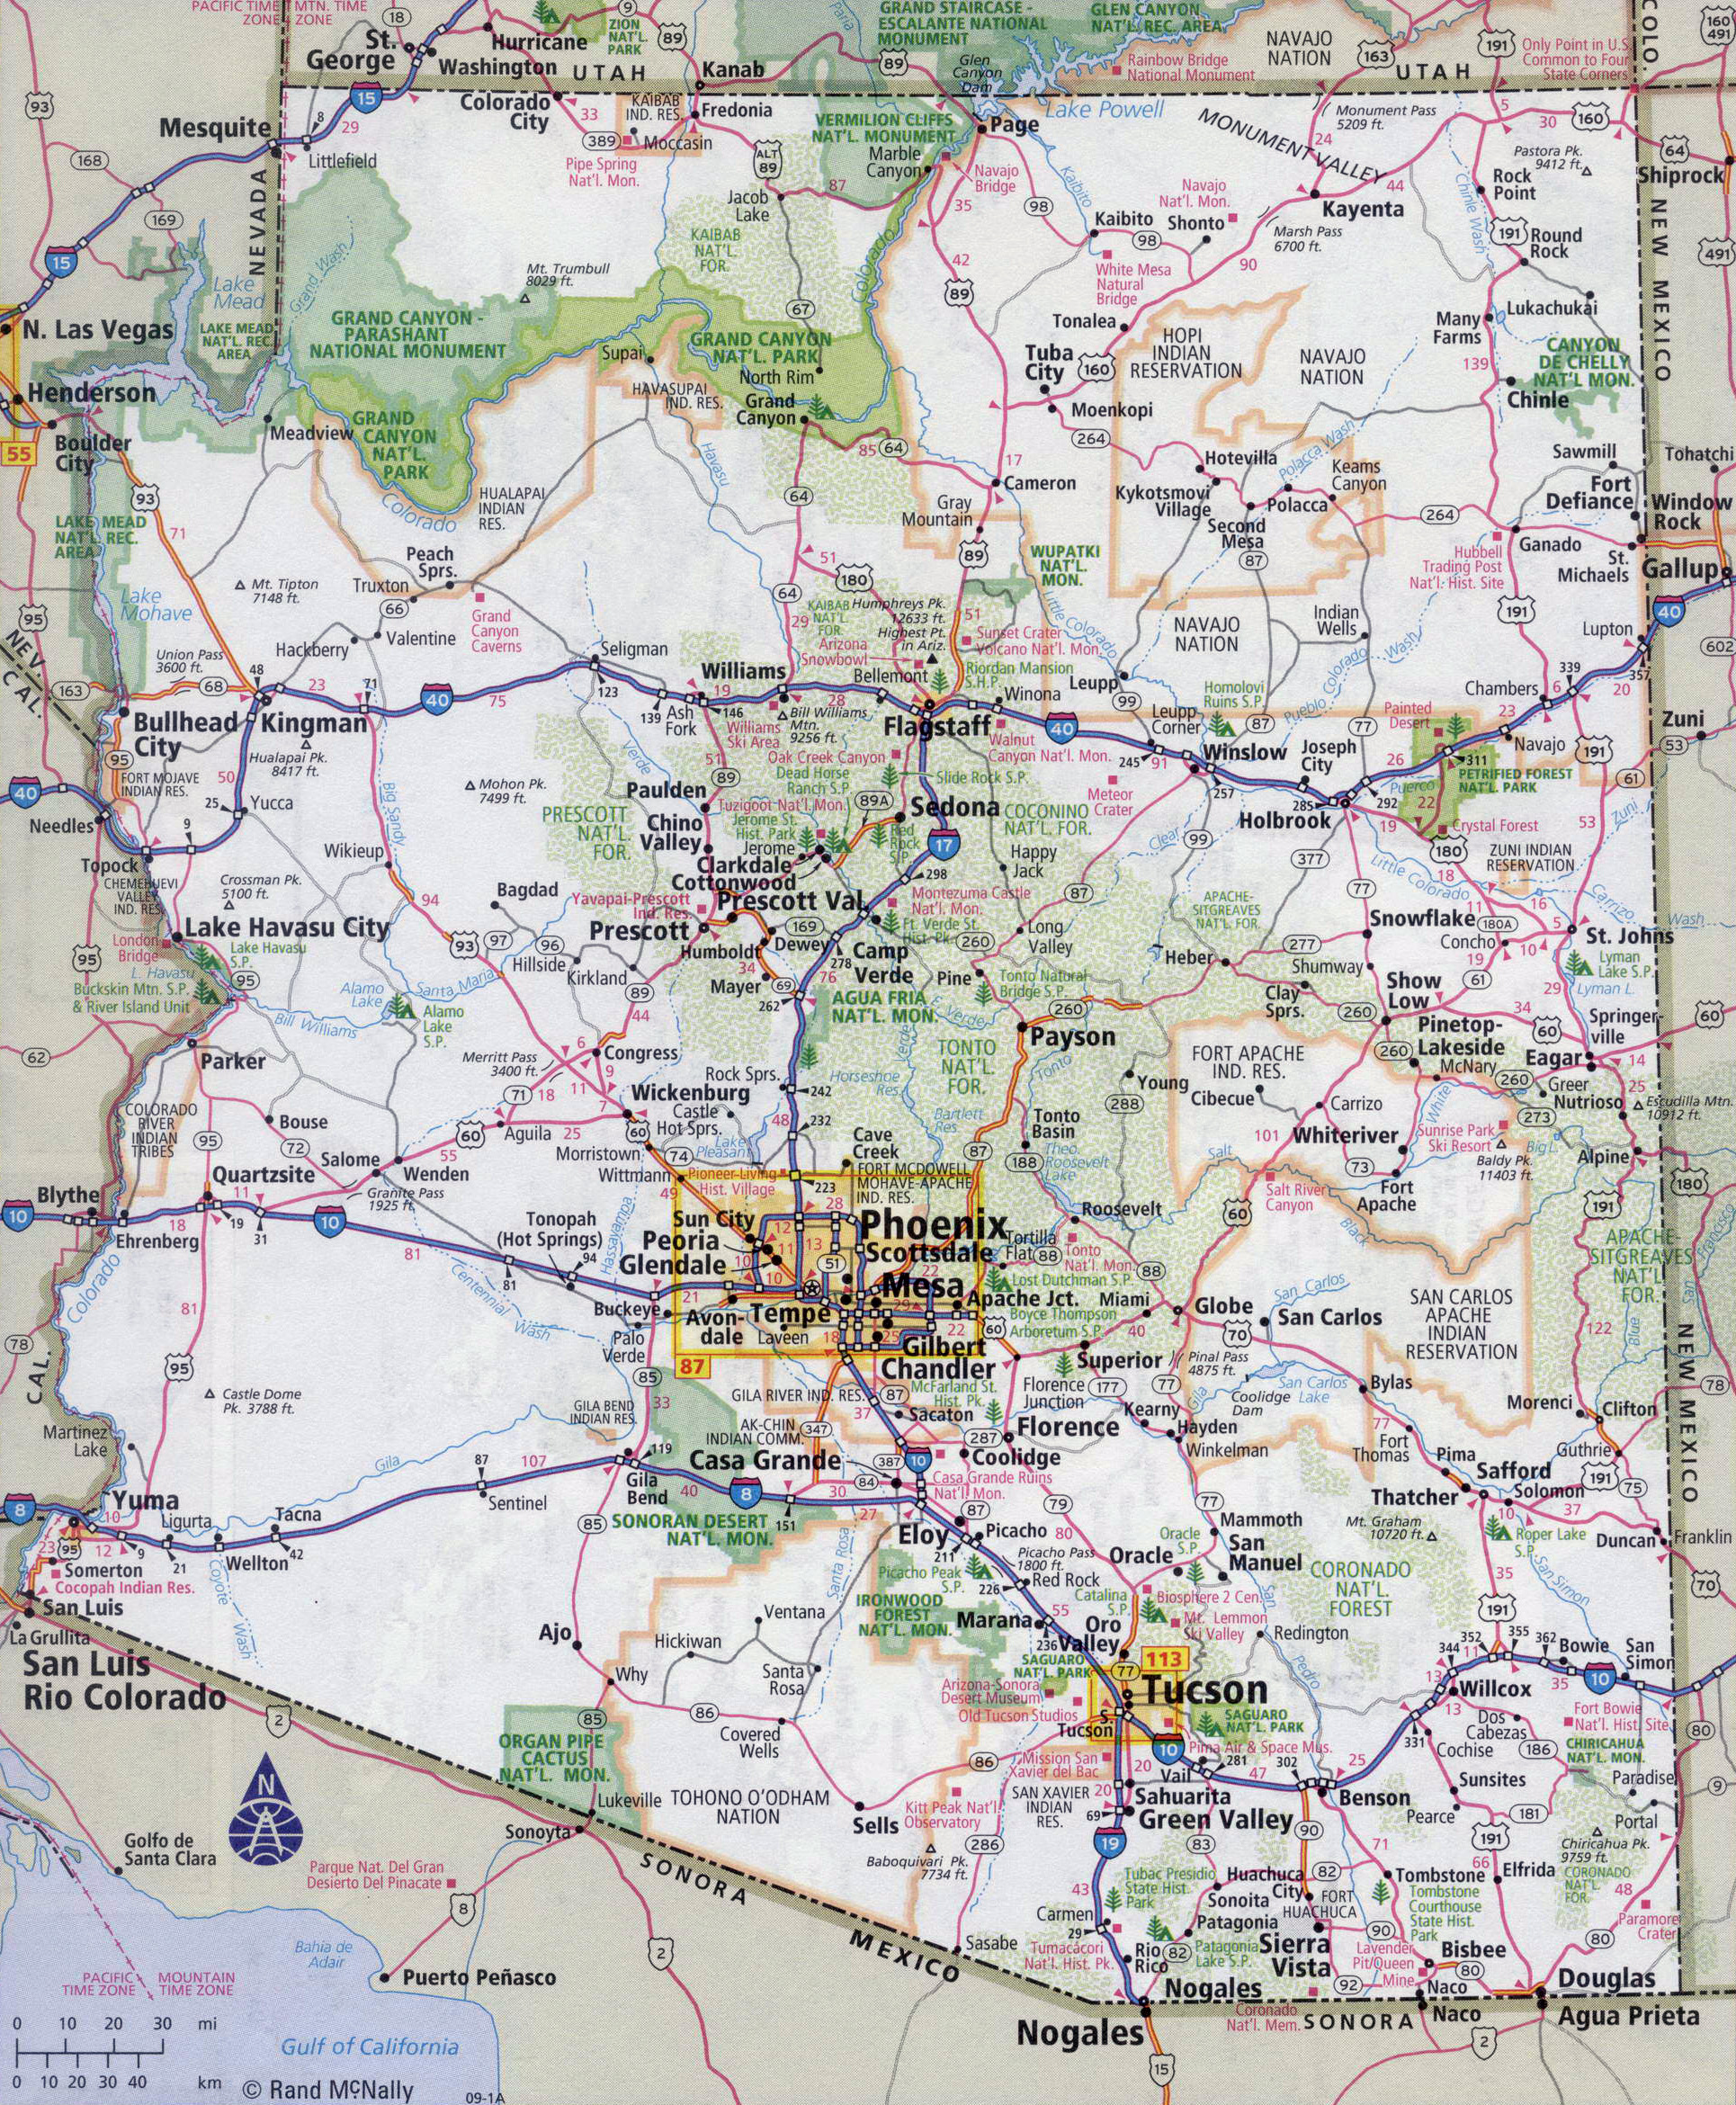 Large Detailed Road Map Of Arizona State With All Cities Vidiani - Detailed usa map with states and cities